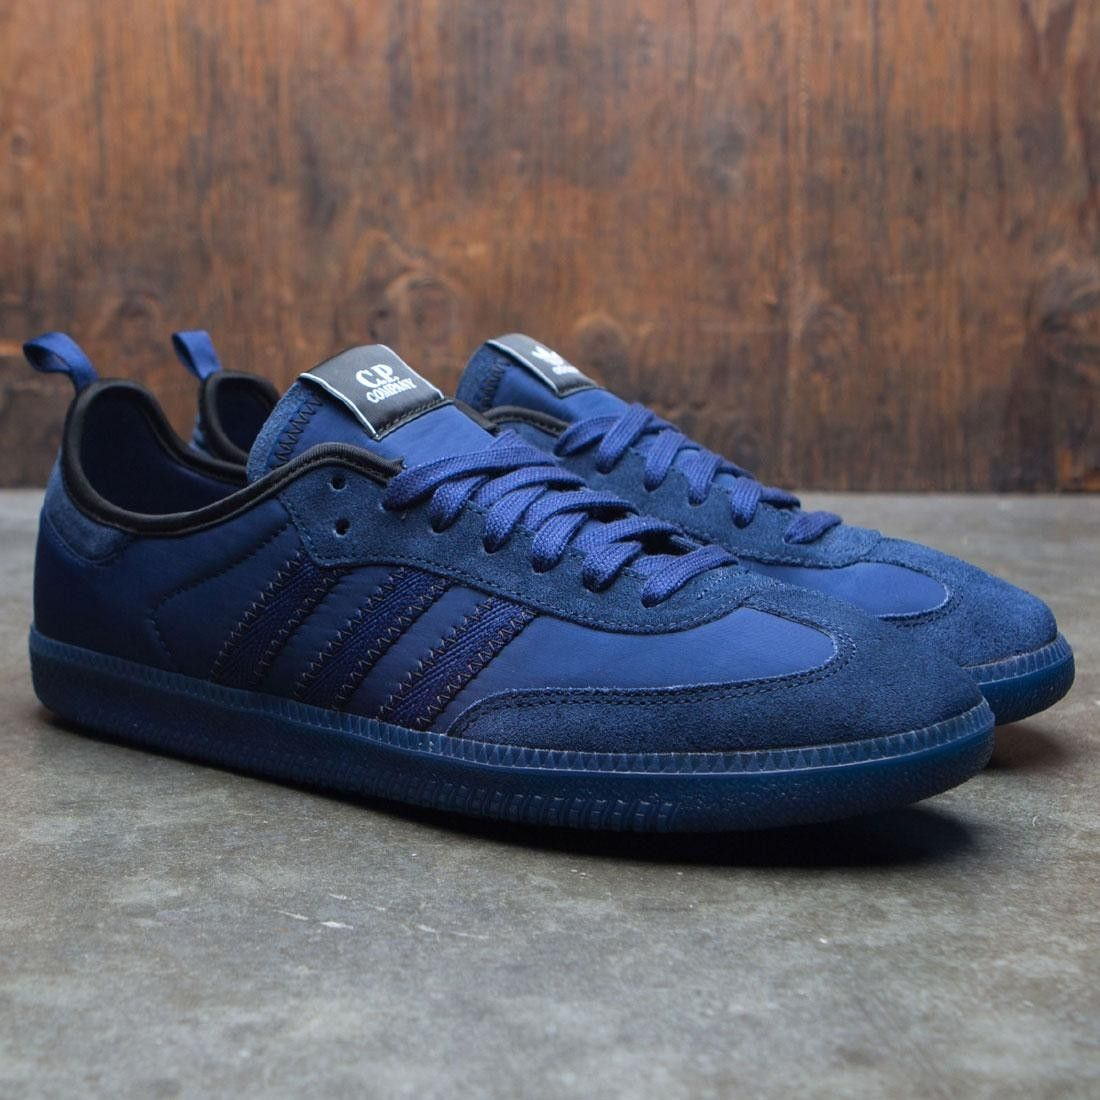 88a2a5432 Adidas x C.P. Company Men Samba (blue   dark blue   night sky   dark ...